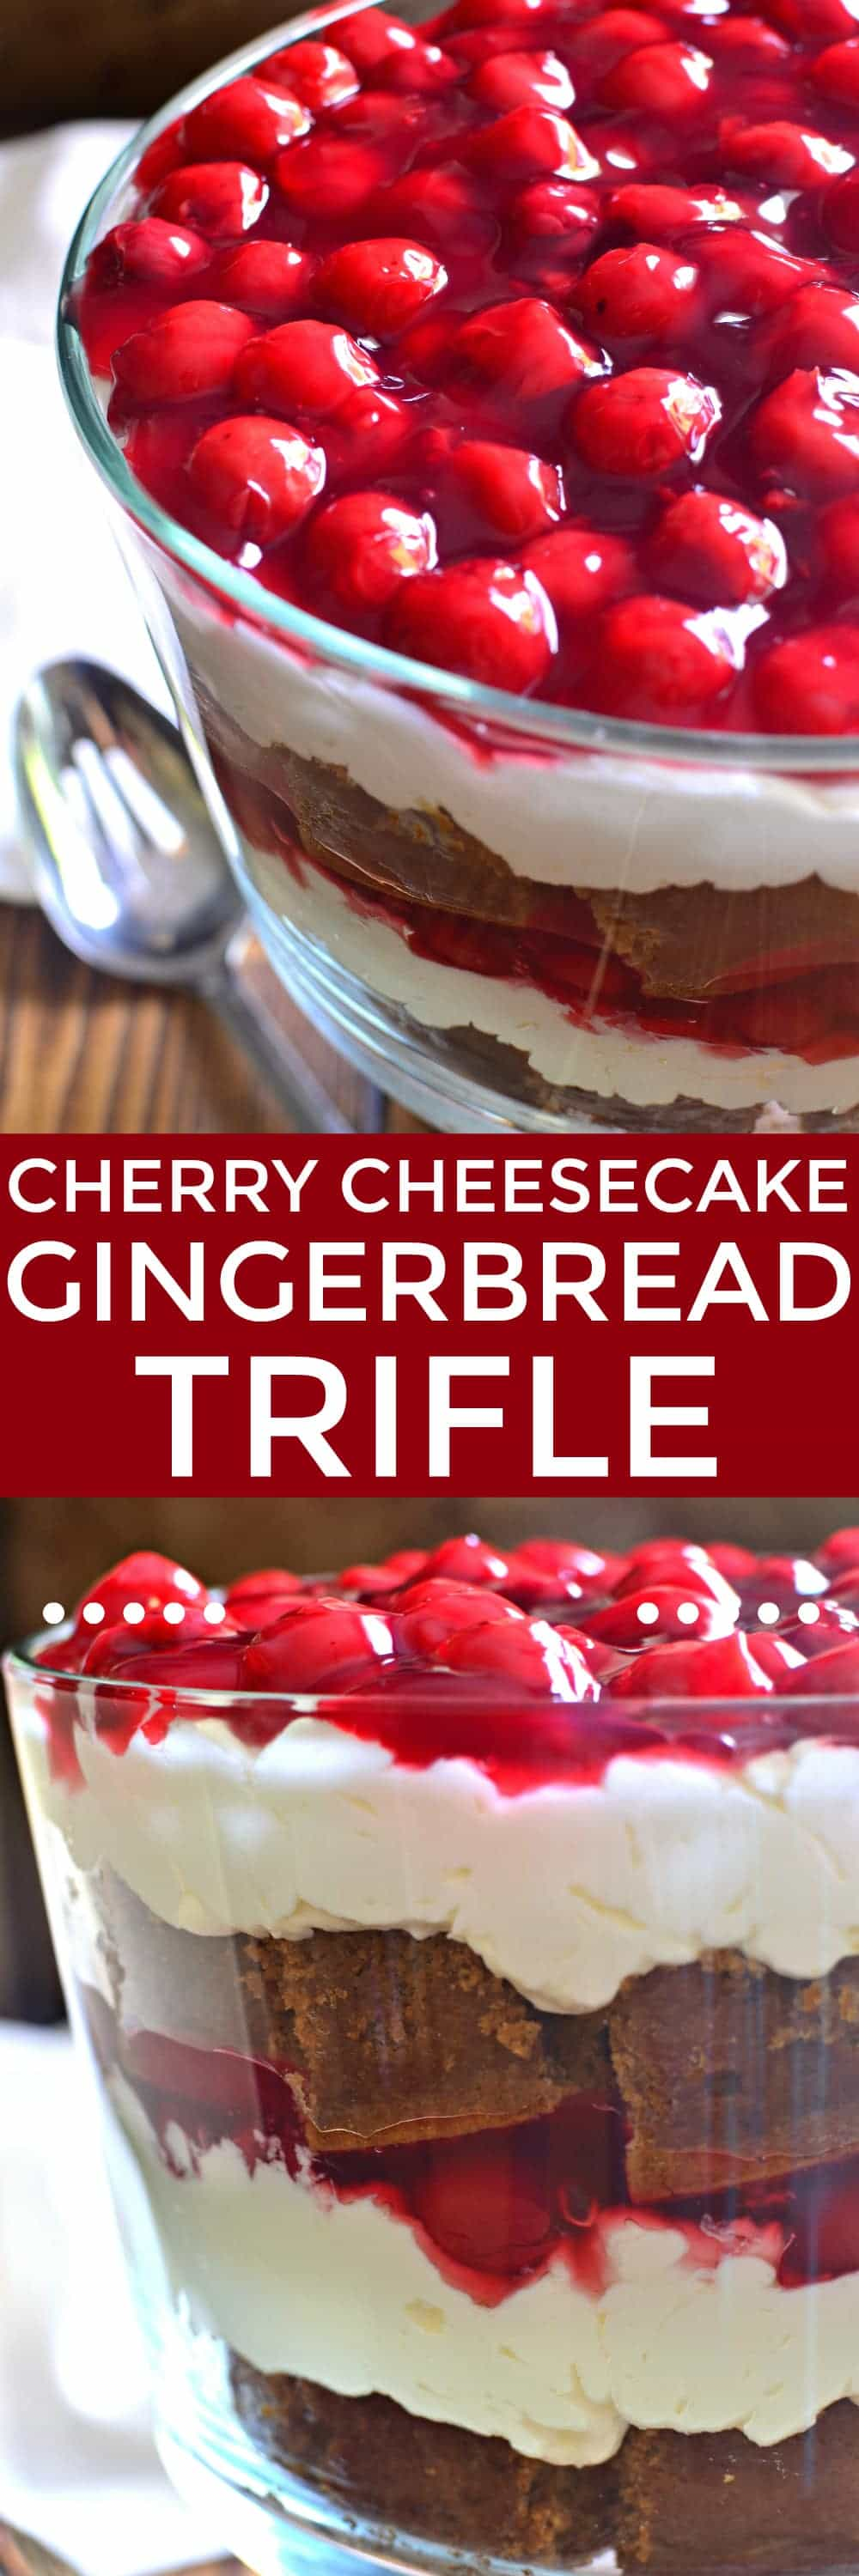 Cherry Cheesecake Gingerbread Trifle is the perfect dessert for the holidays! It's easy to make, delicious to enjoy, and guaranteed to impress all your holiday guests!